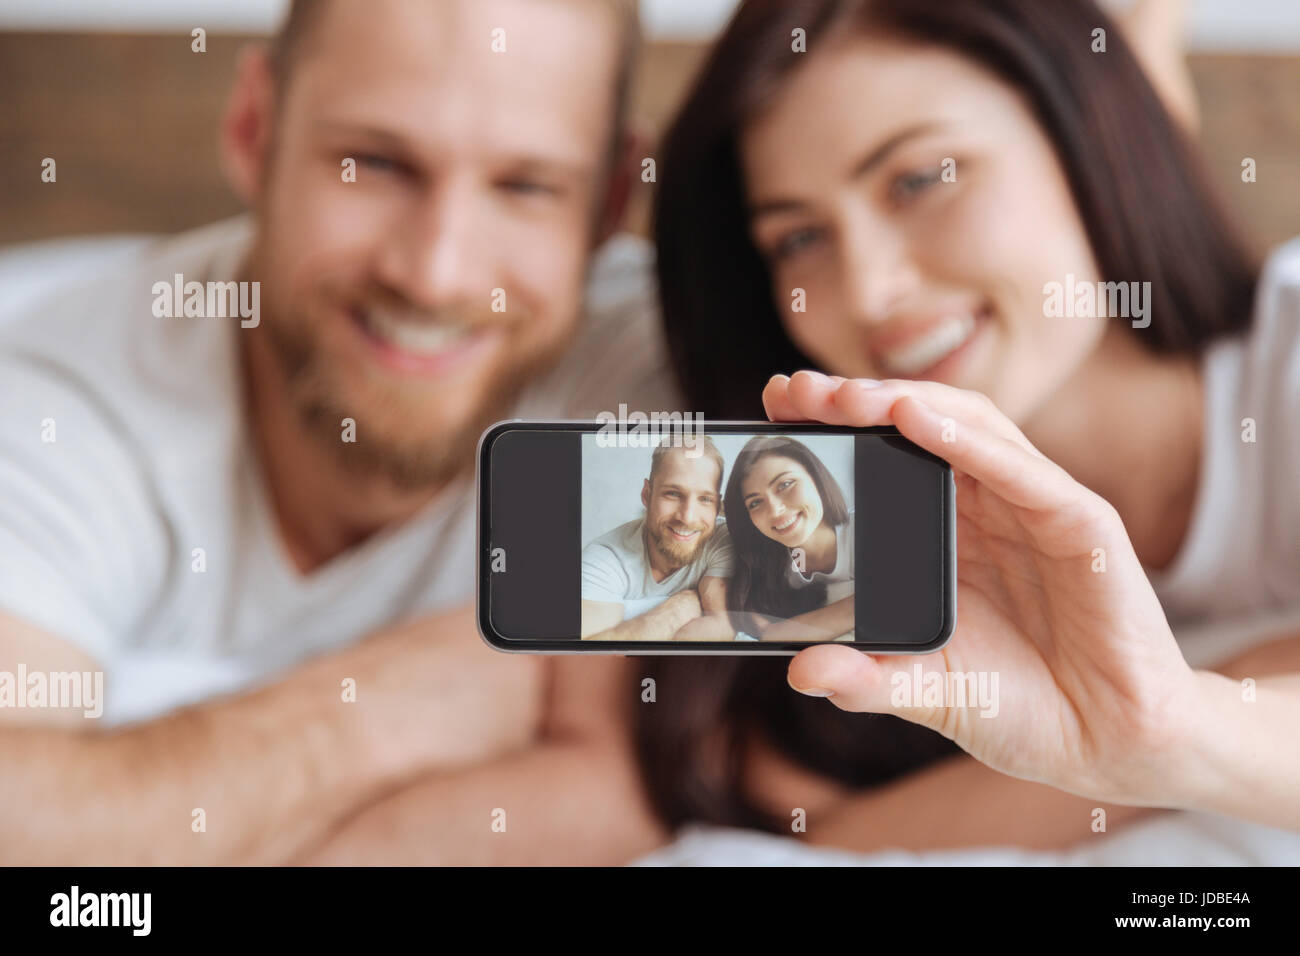 Young couple taking self portrait picture with smartphone - Stock Image